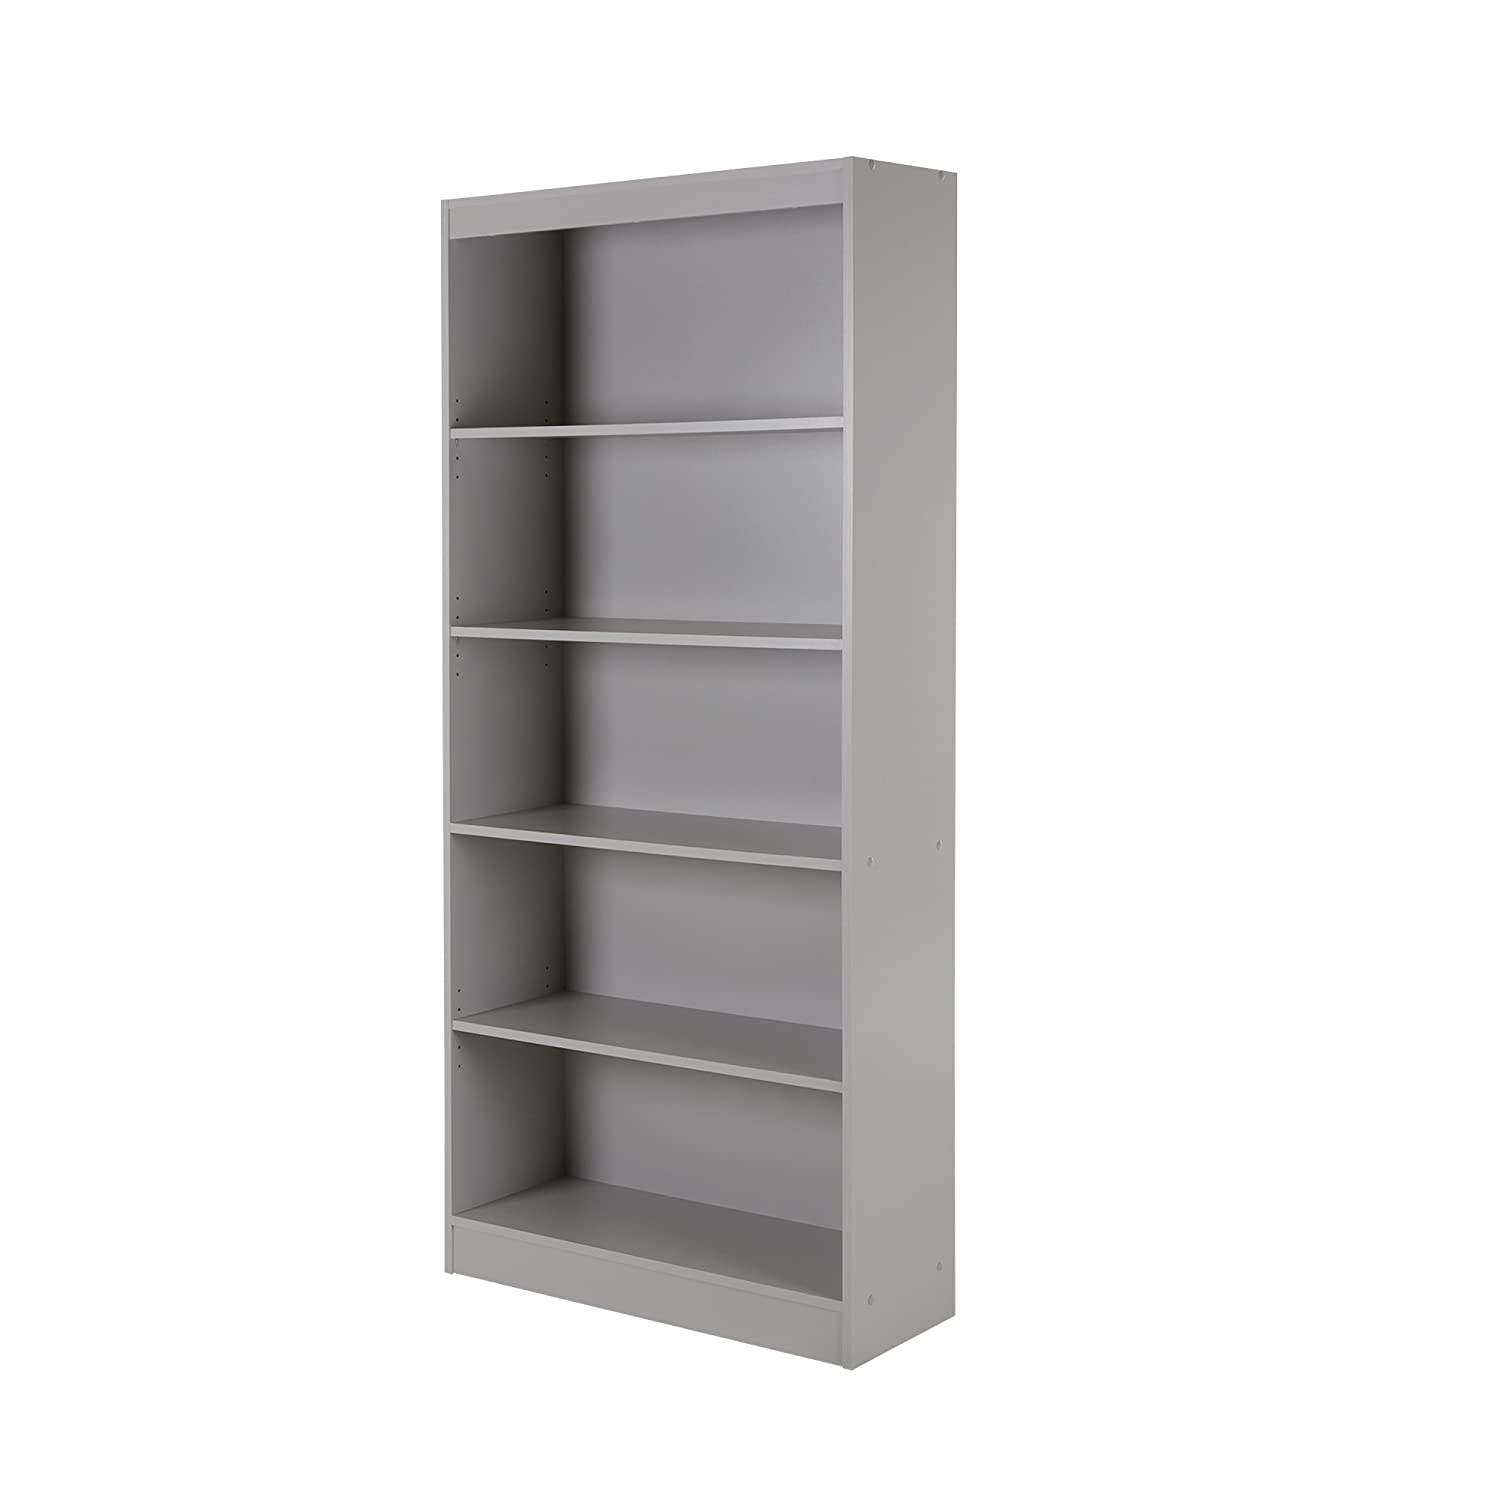 Amazon.com: South Shore Axess 5 Shelf Bookcase, Soft Gray: Kitchen U0026 Dining